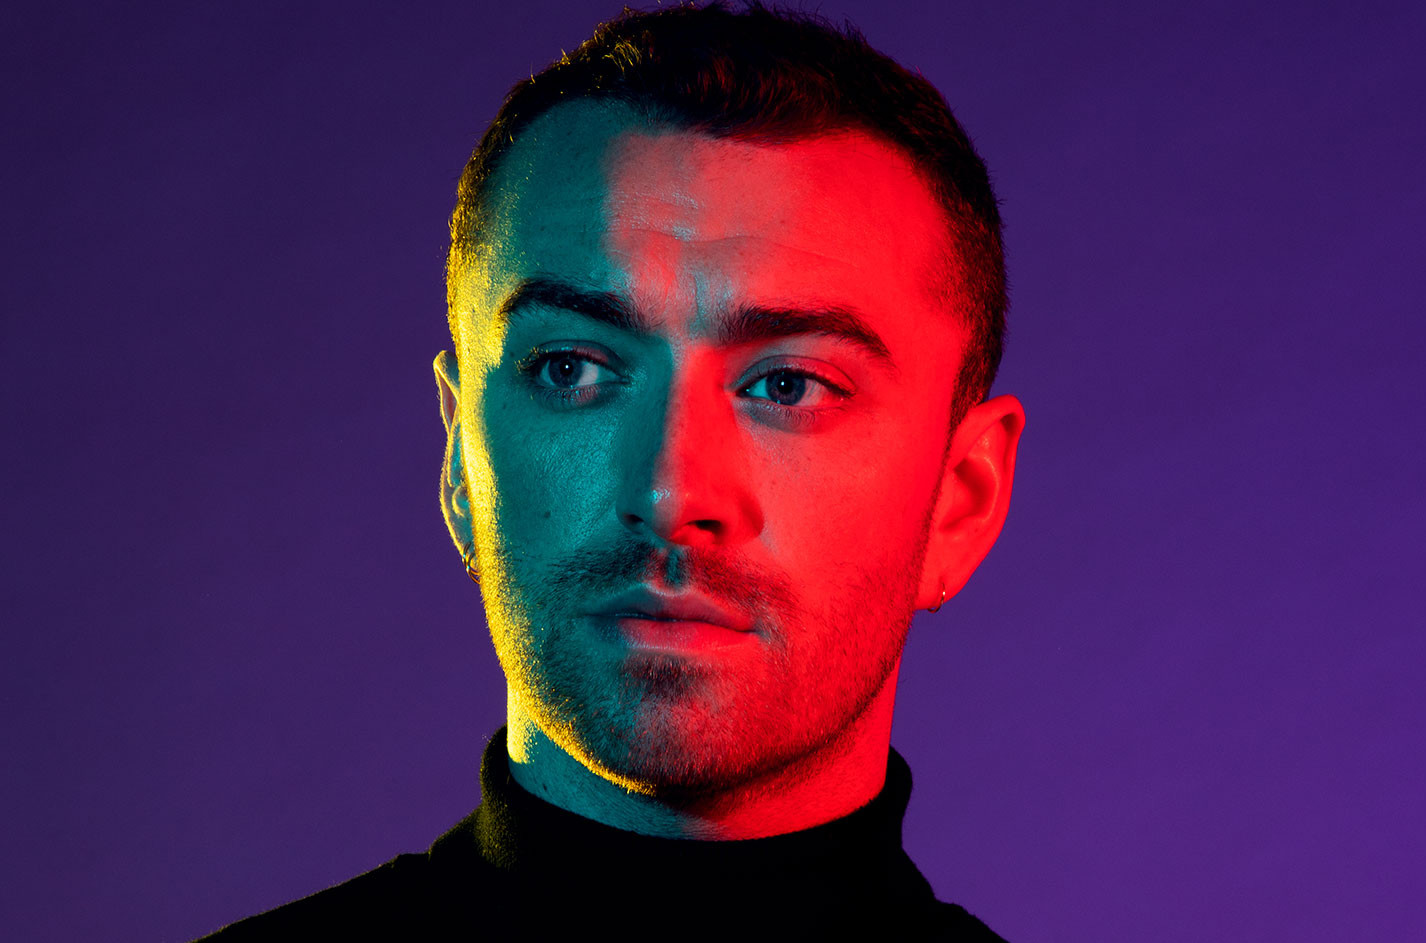 Sam Smith Announces Their Pronouns are 'They/Them'